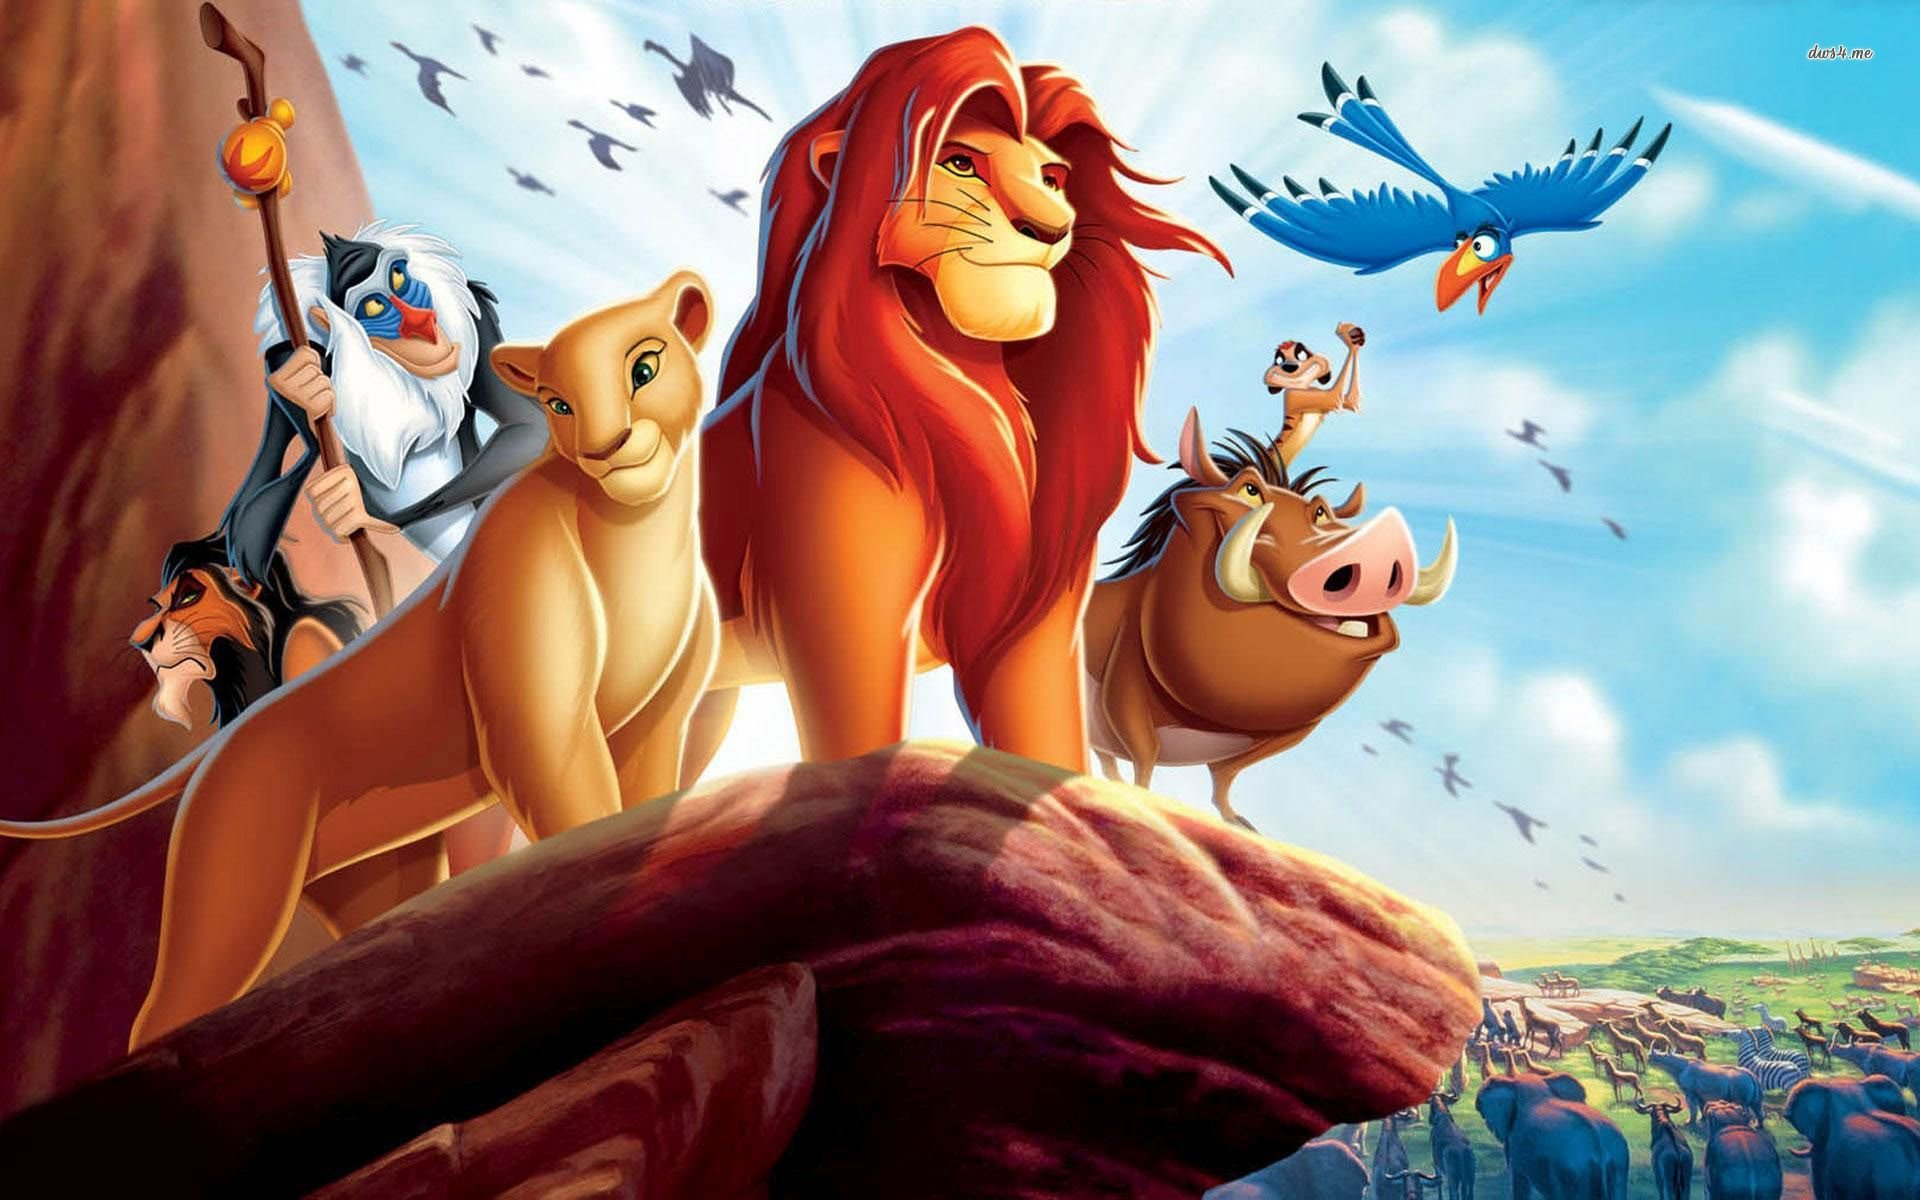 Wallpaper download hd love for mobile - Download The Lion King Wallpaper Gallery